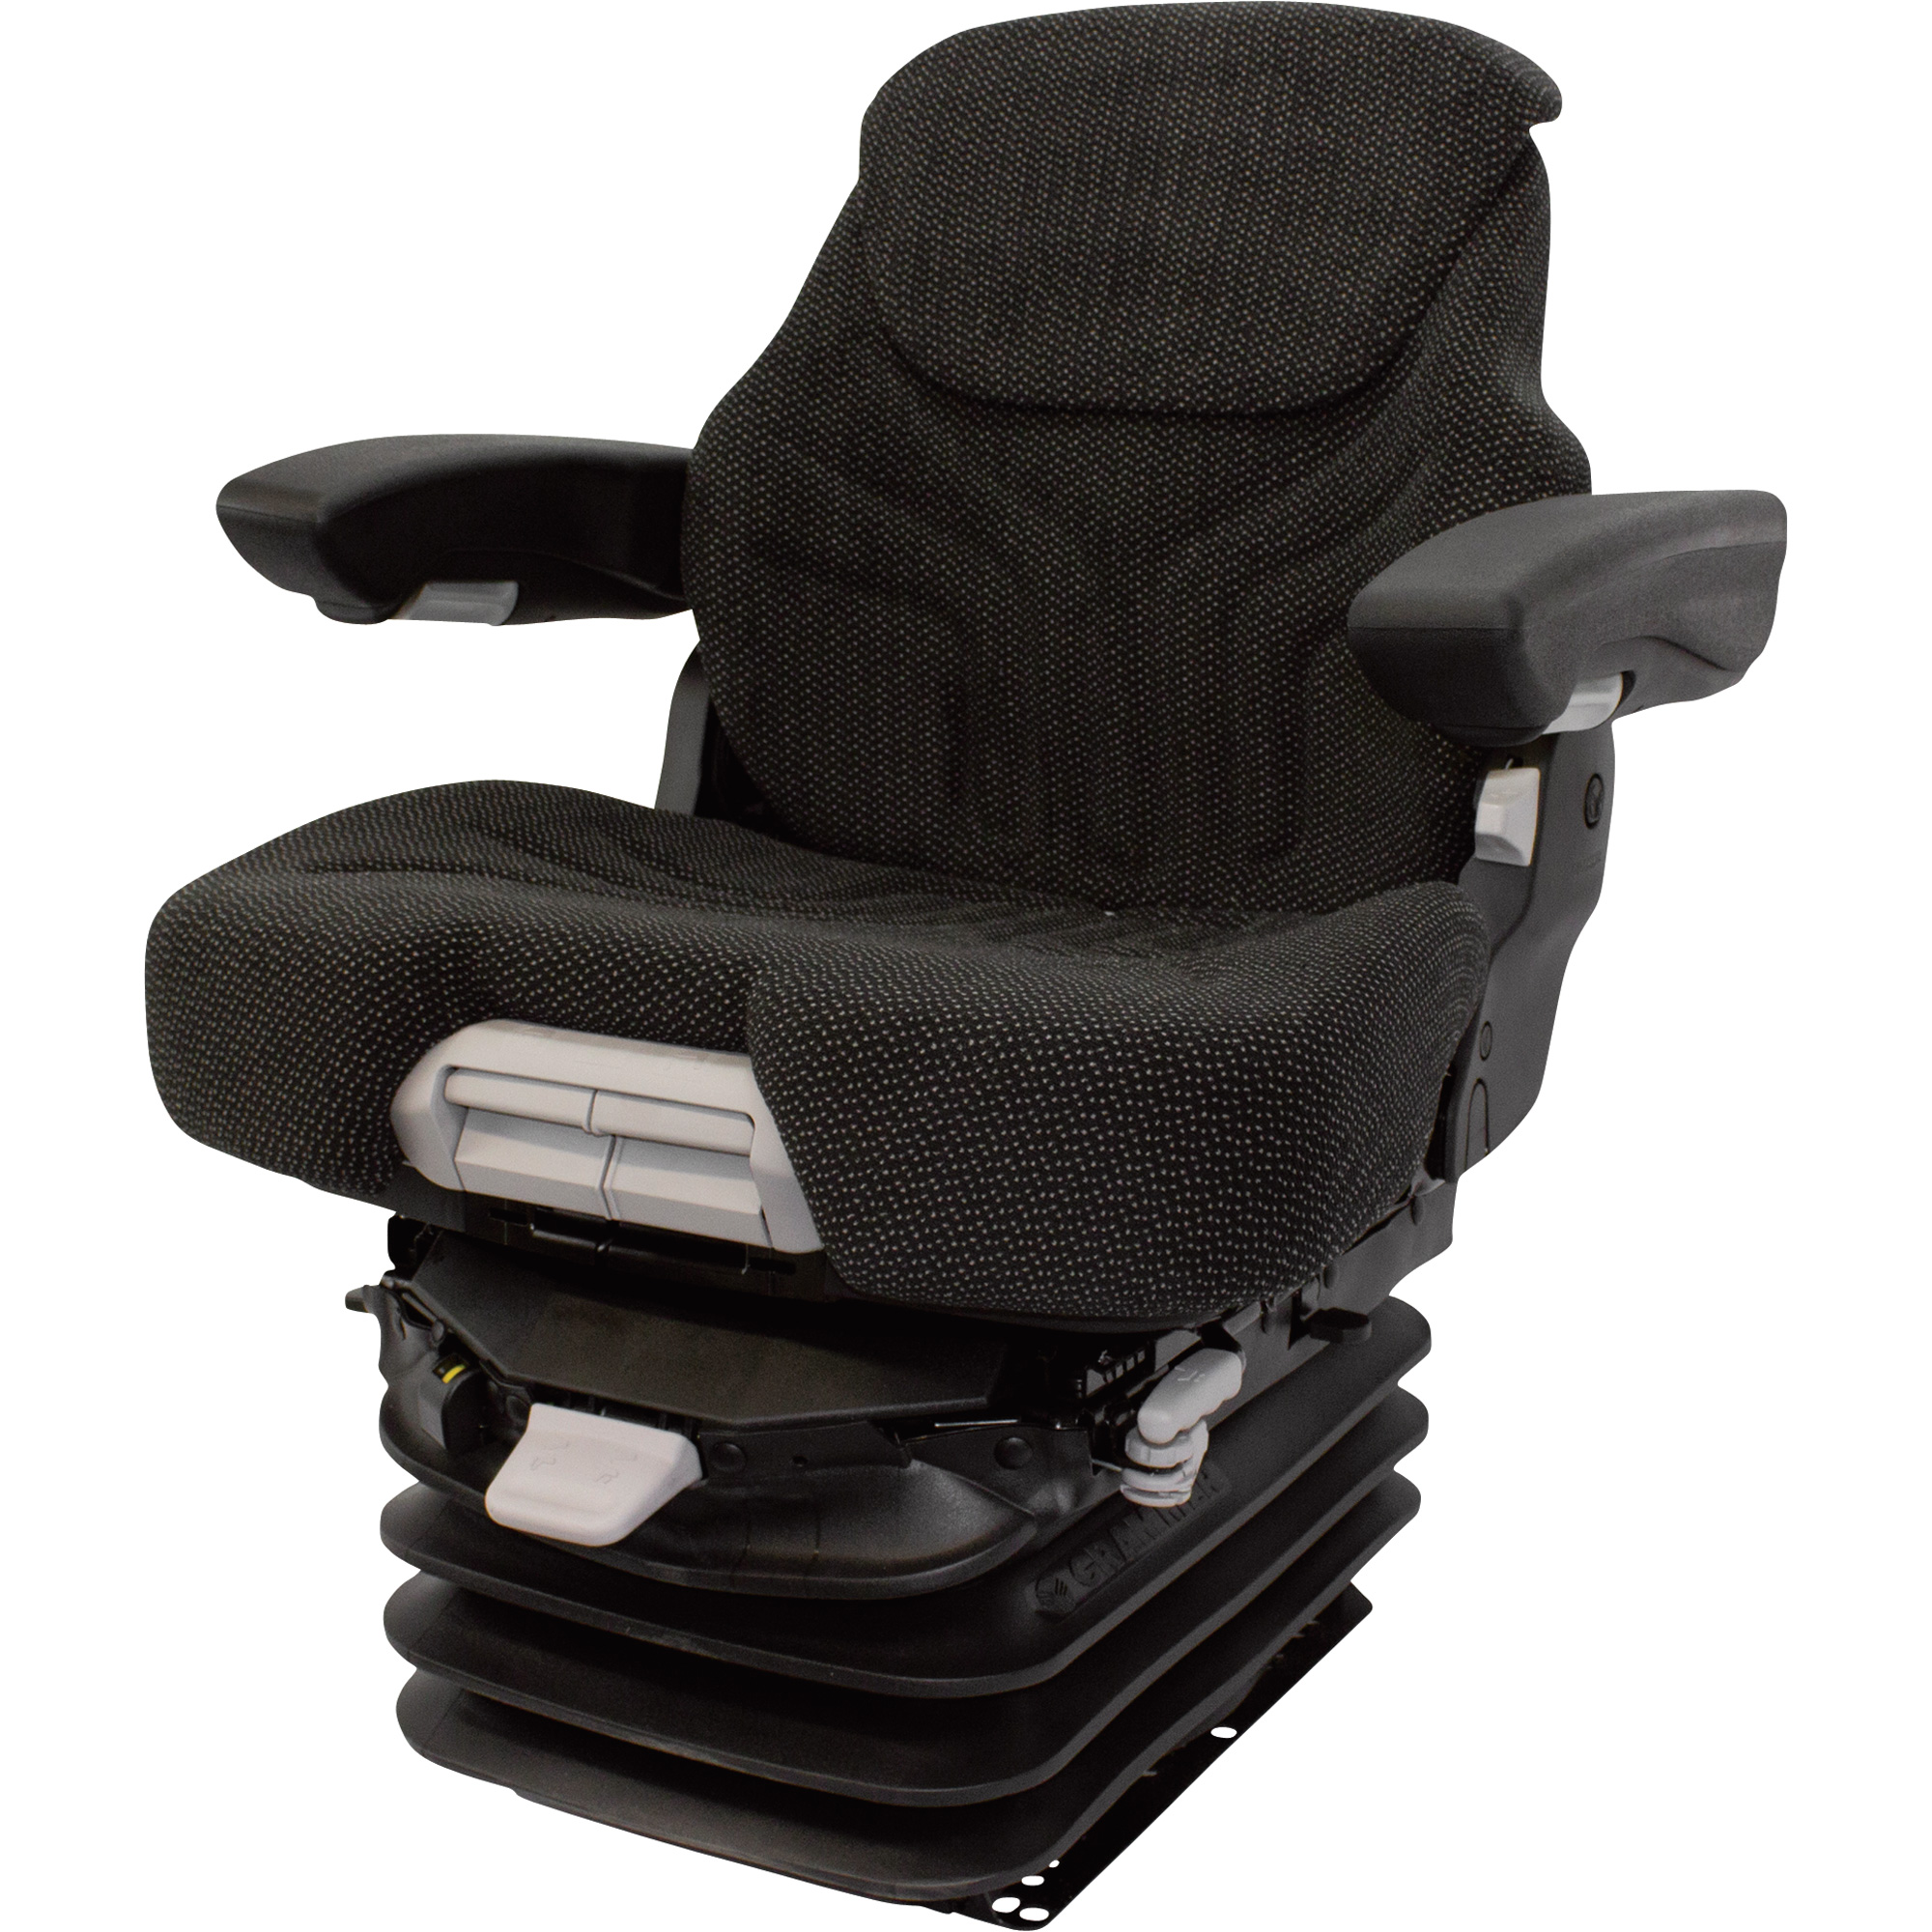 K And M Tractor Seats : K m grammer msg tractor seat with v air suspension